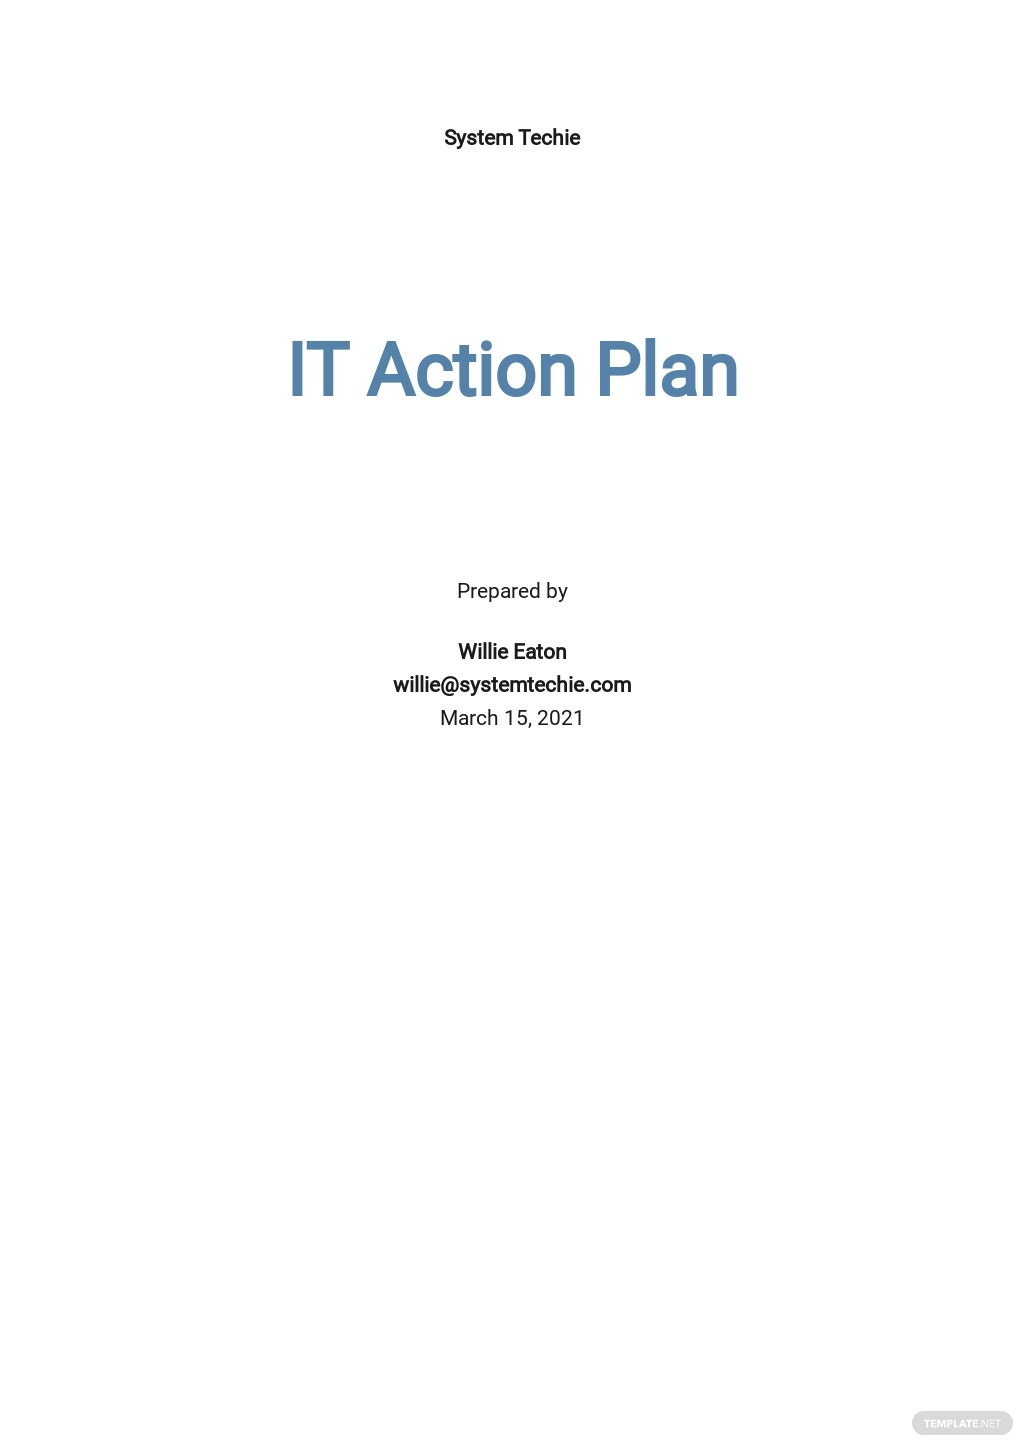 IT Action Plan Template